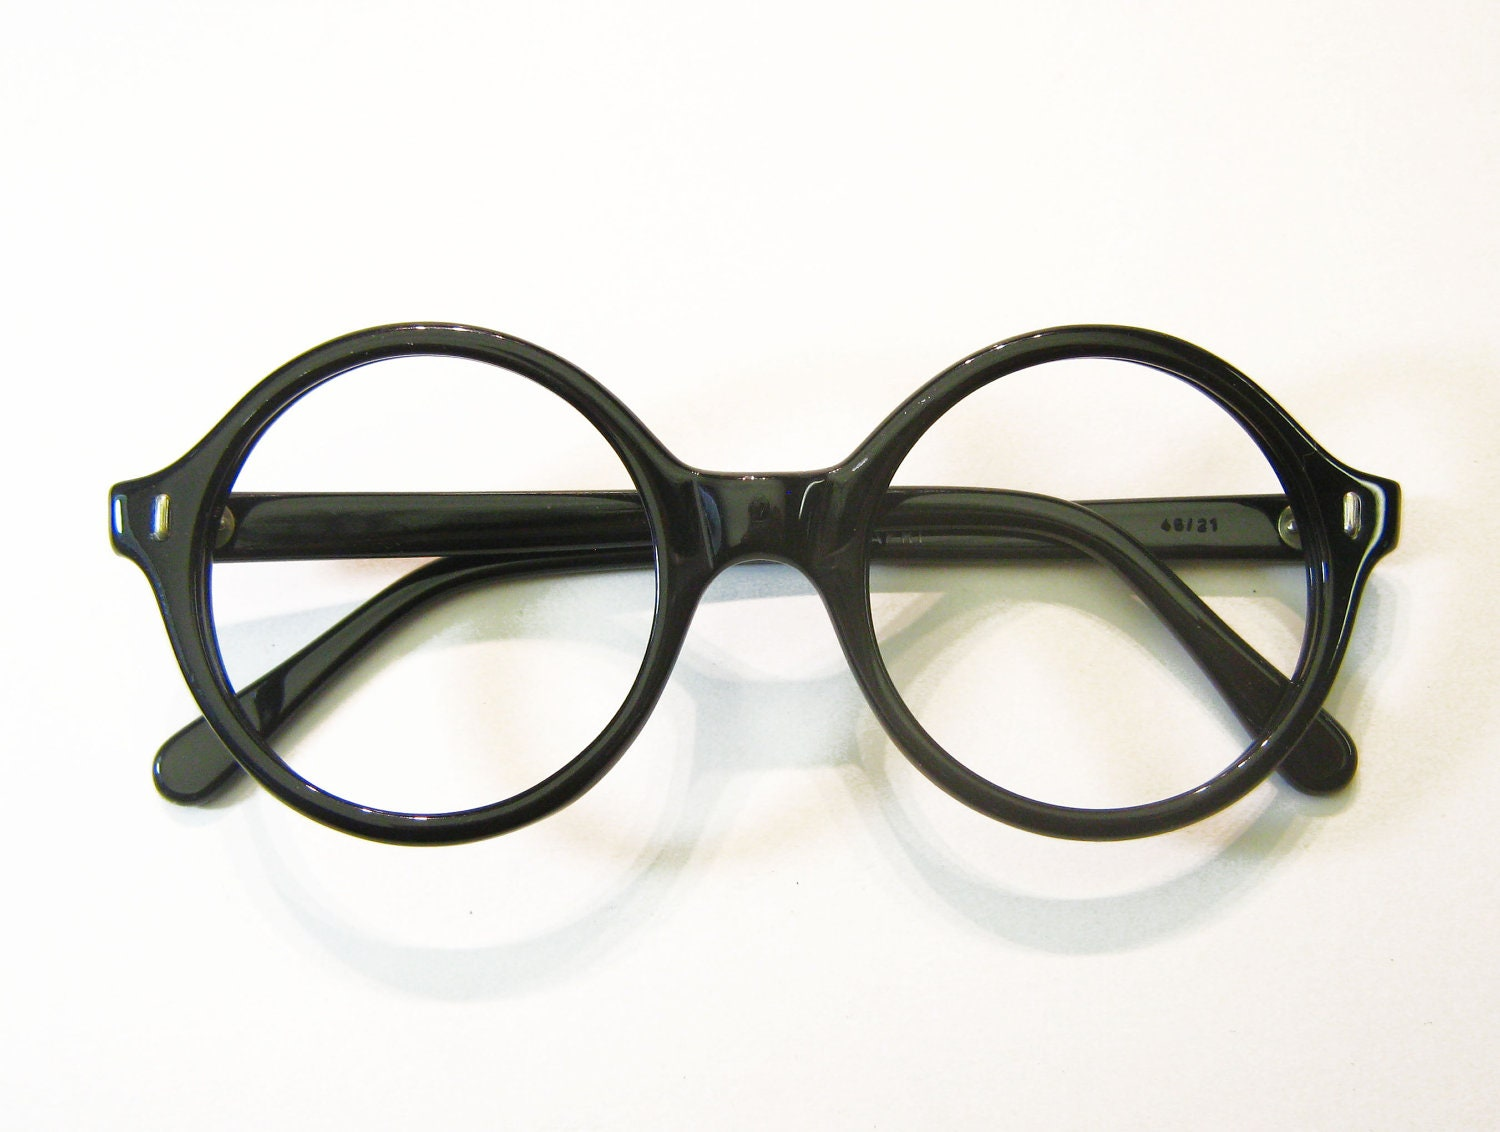 Big Circle Frame Glasses : Large French 360 Round Eyeglass Frames France Vintage 60s